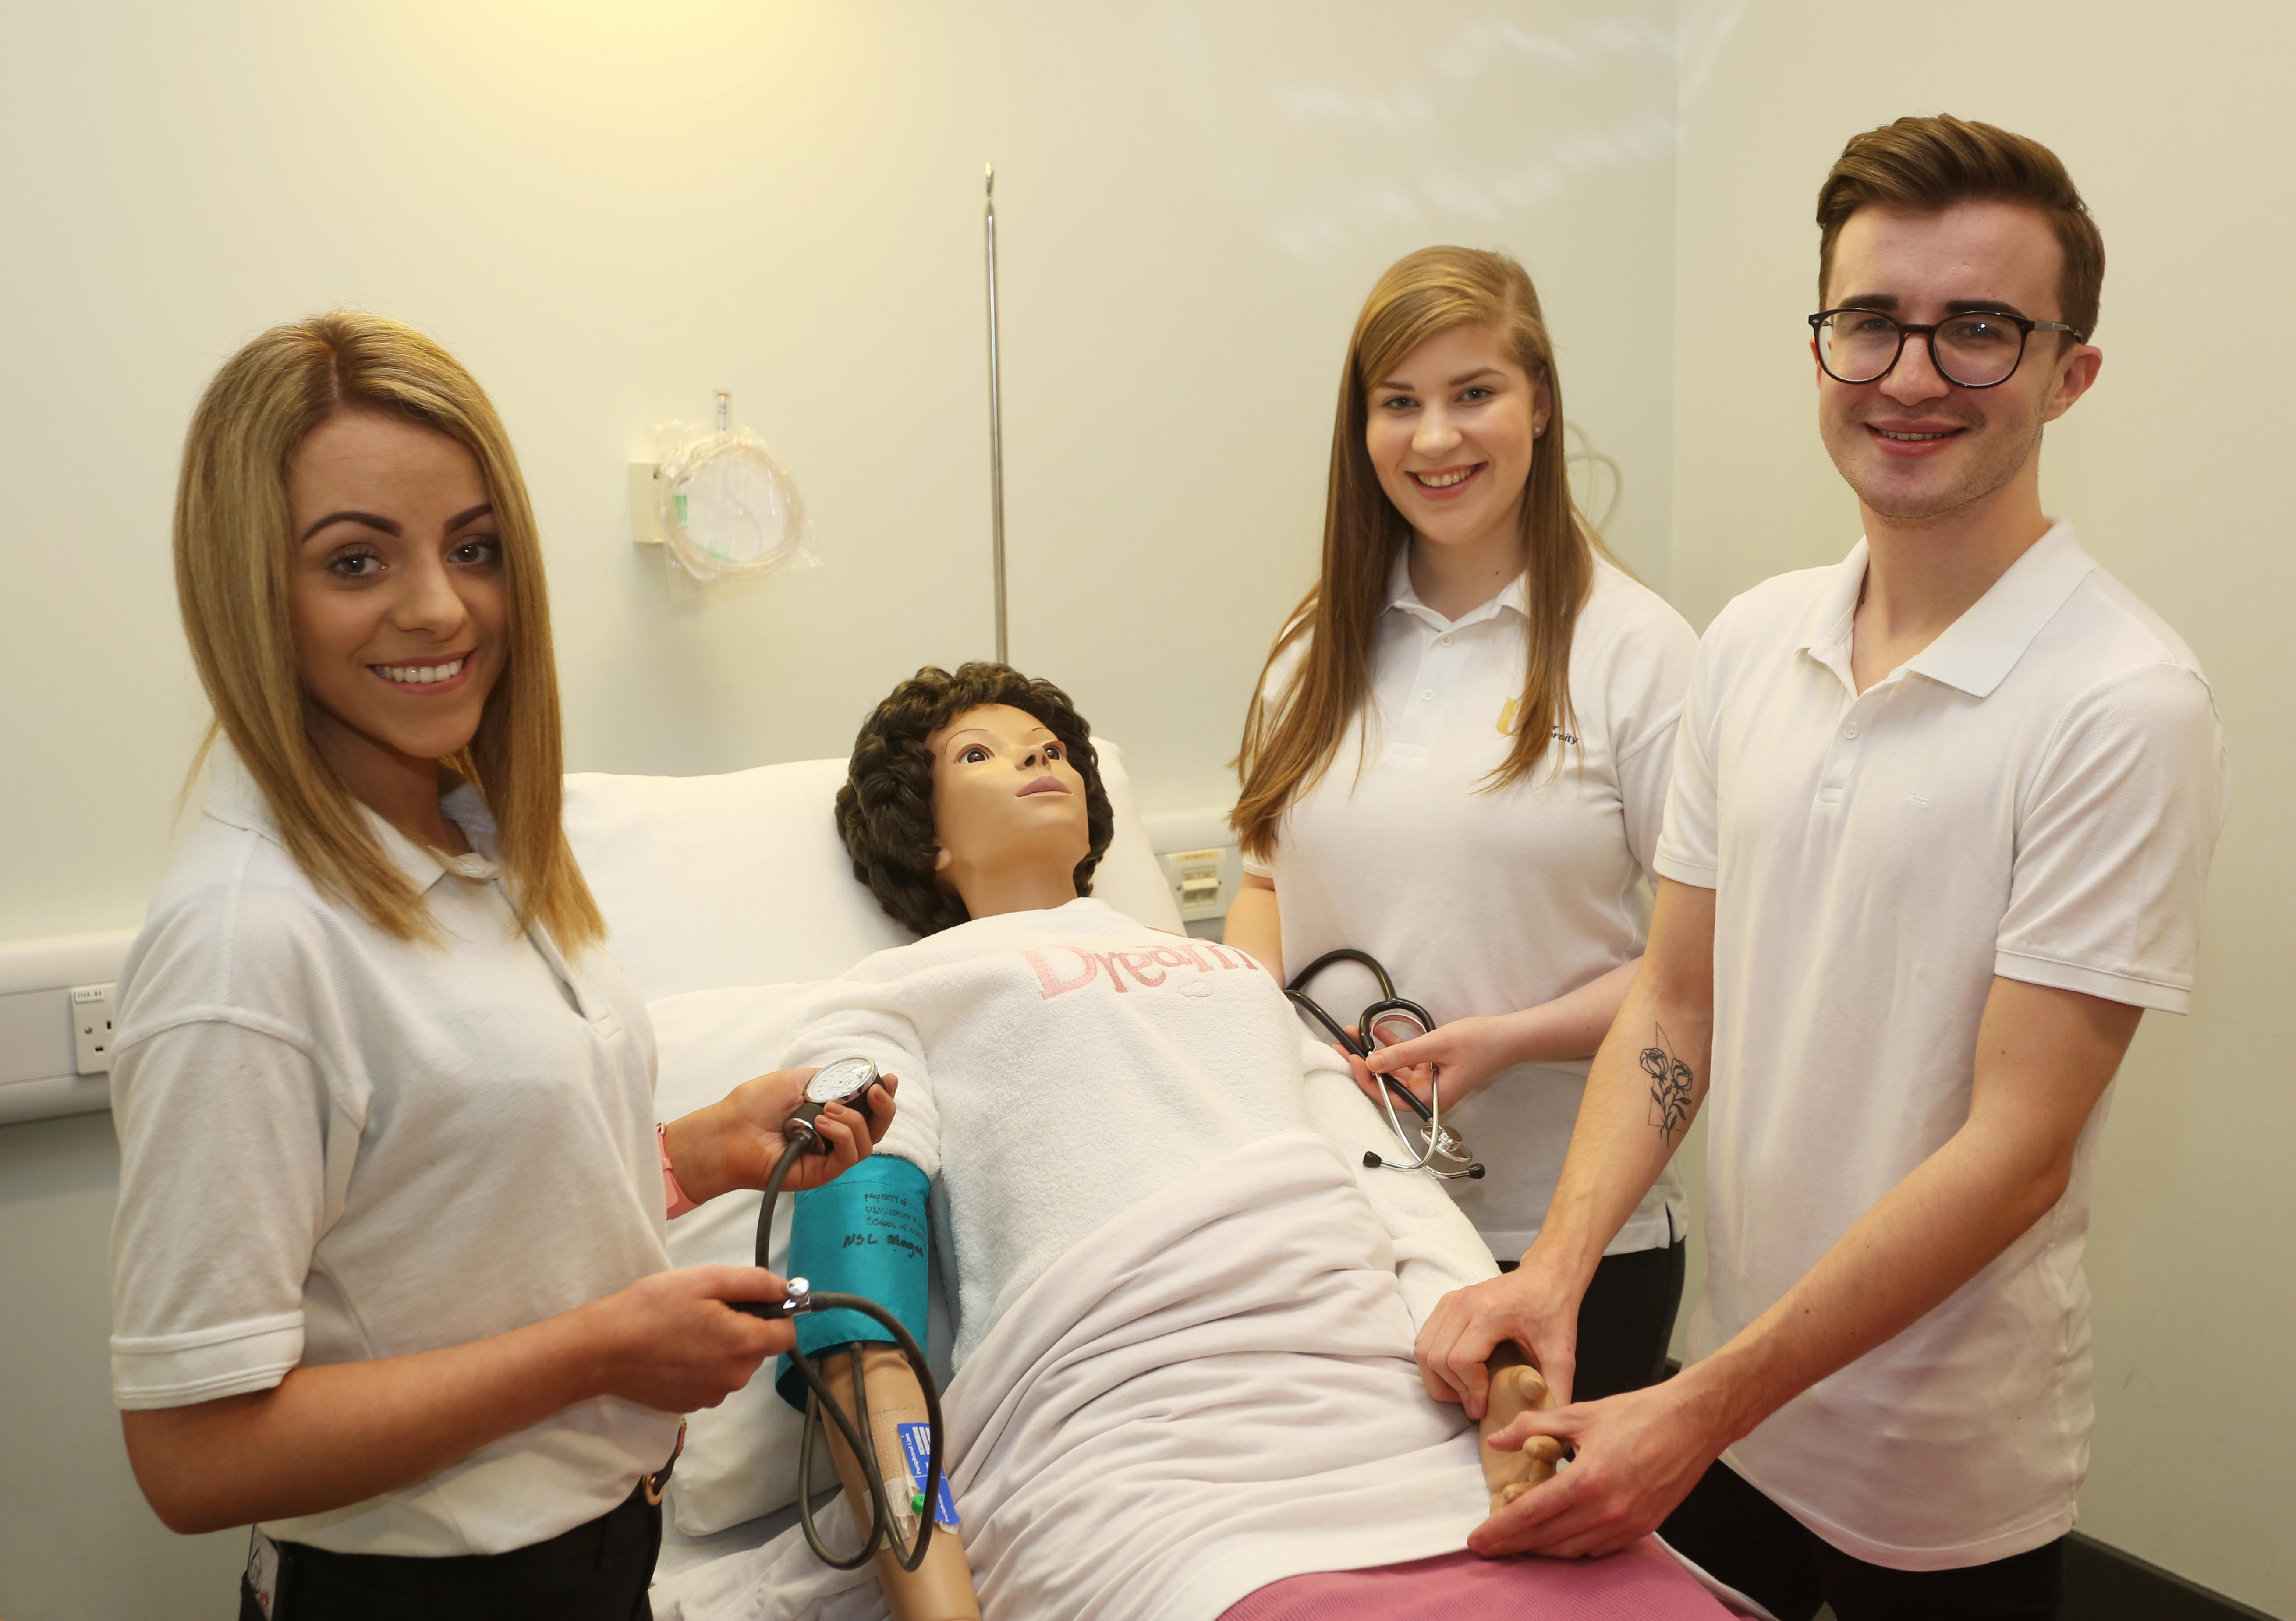 Ulster University research providing dramatic solutions to health care problems